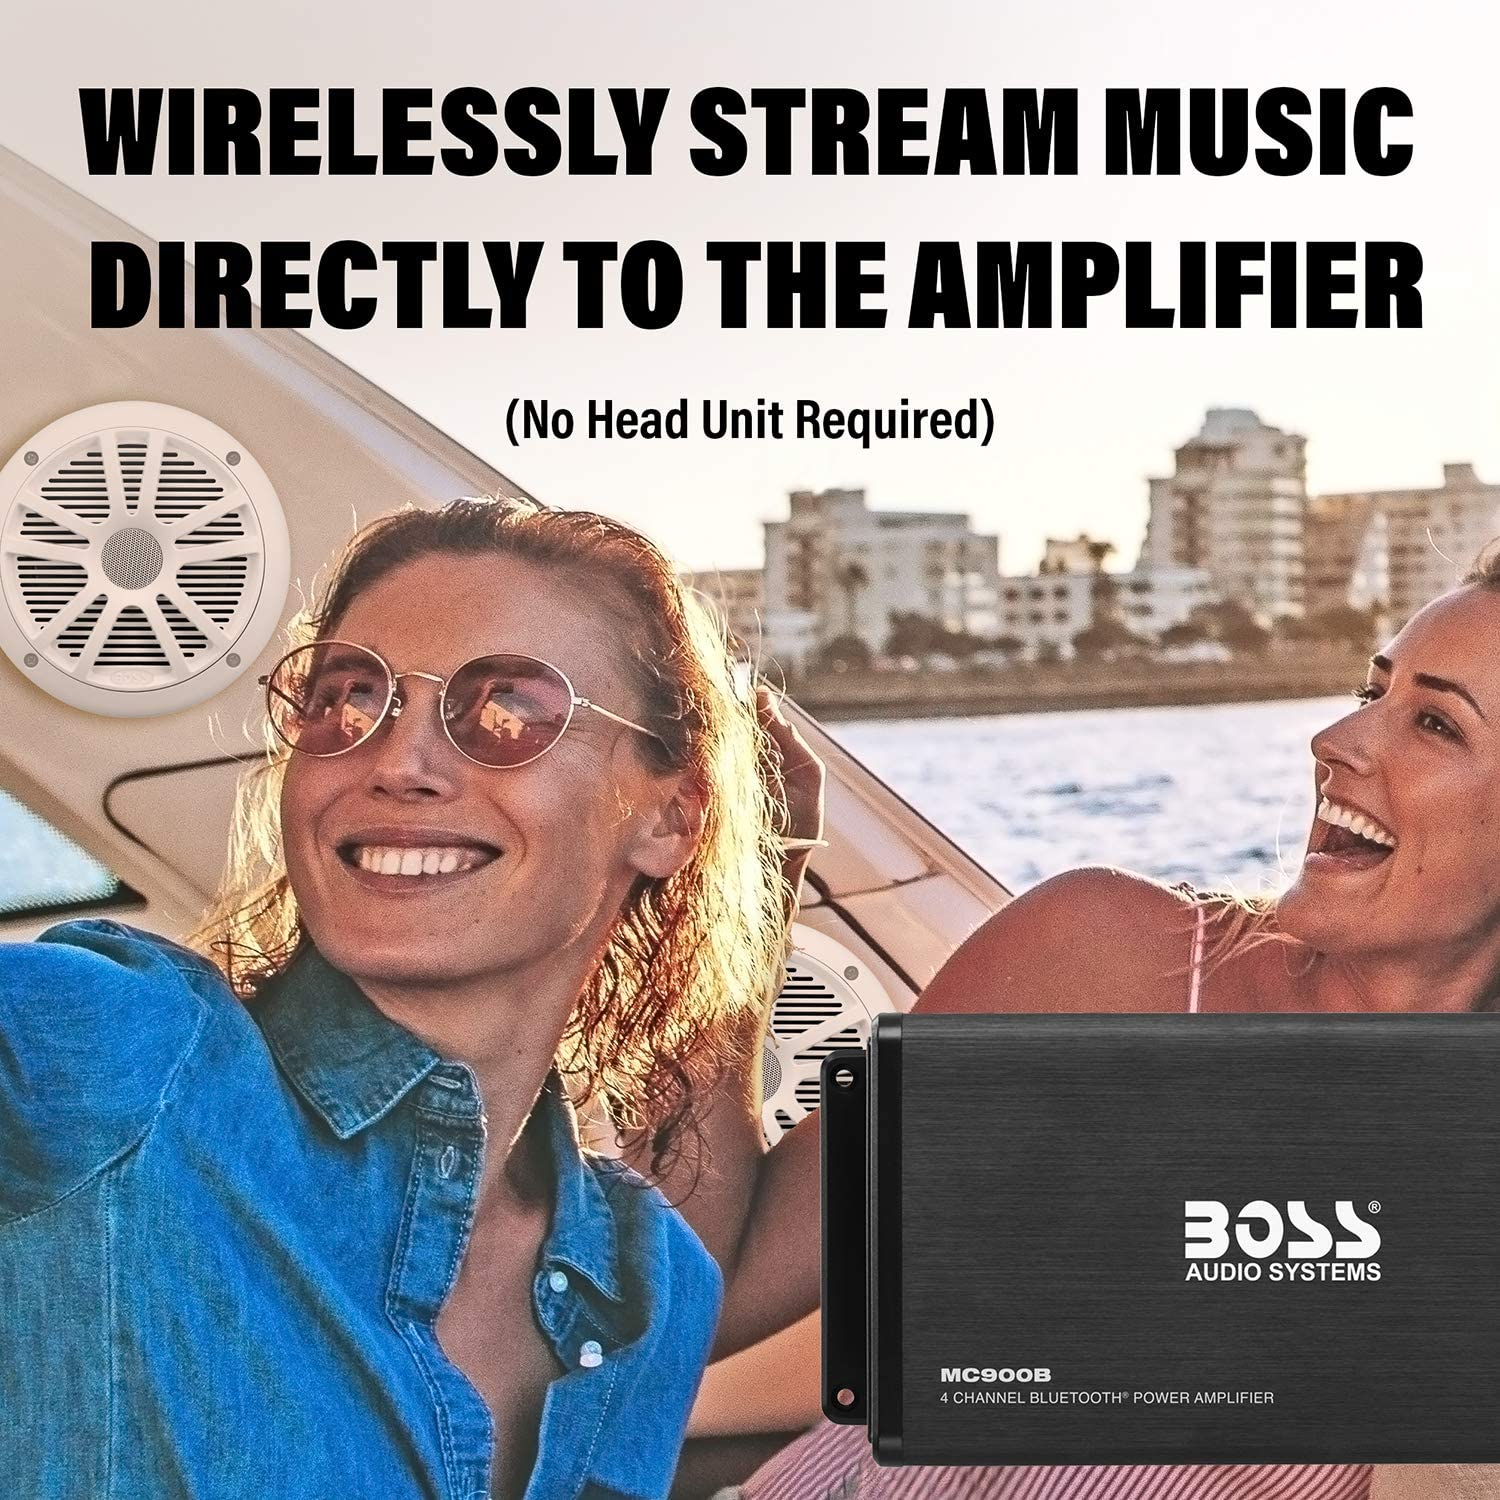 BOSS Audio Systems ASK904B.64 wireless music streaming features